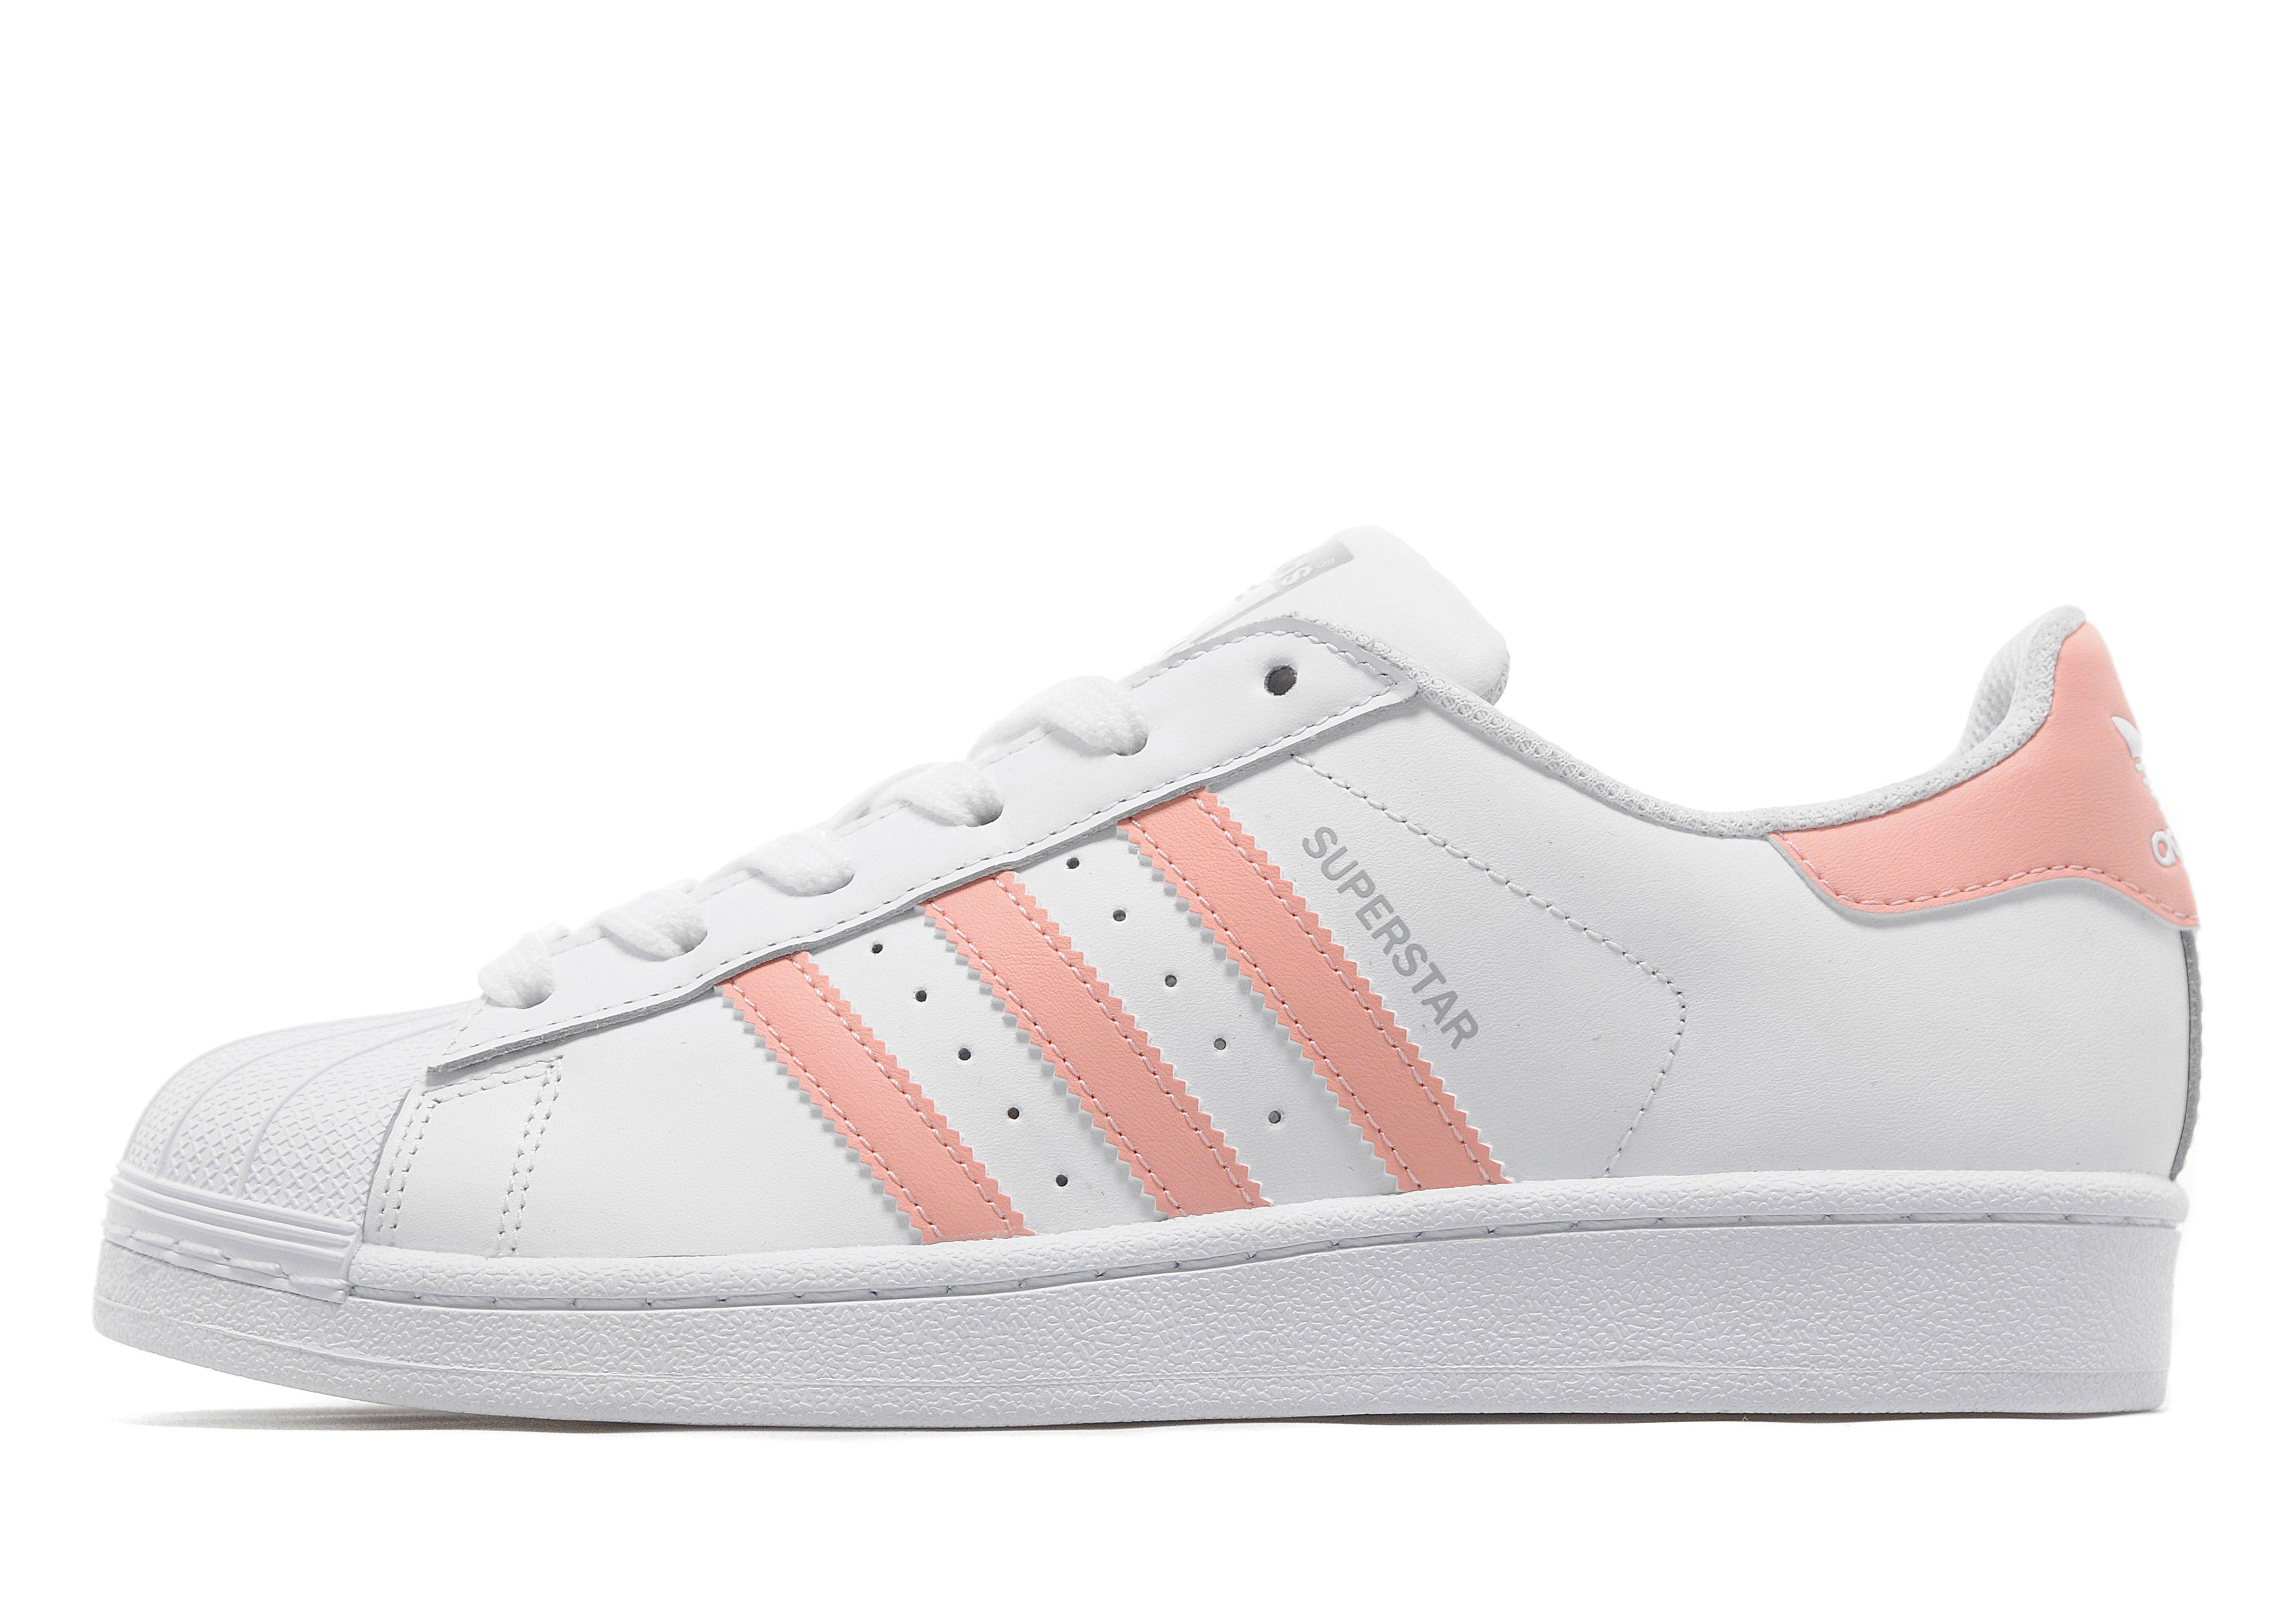 Adidas Superstar Dam Vita